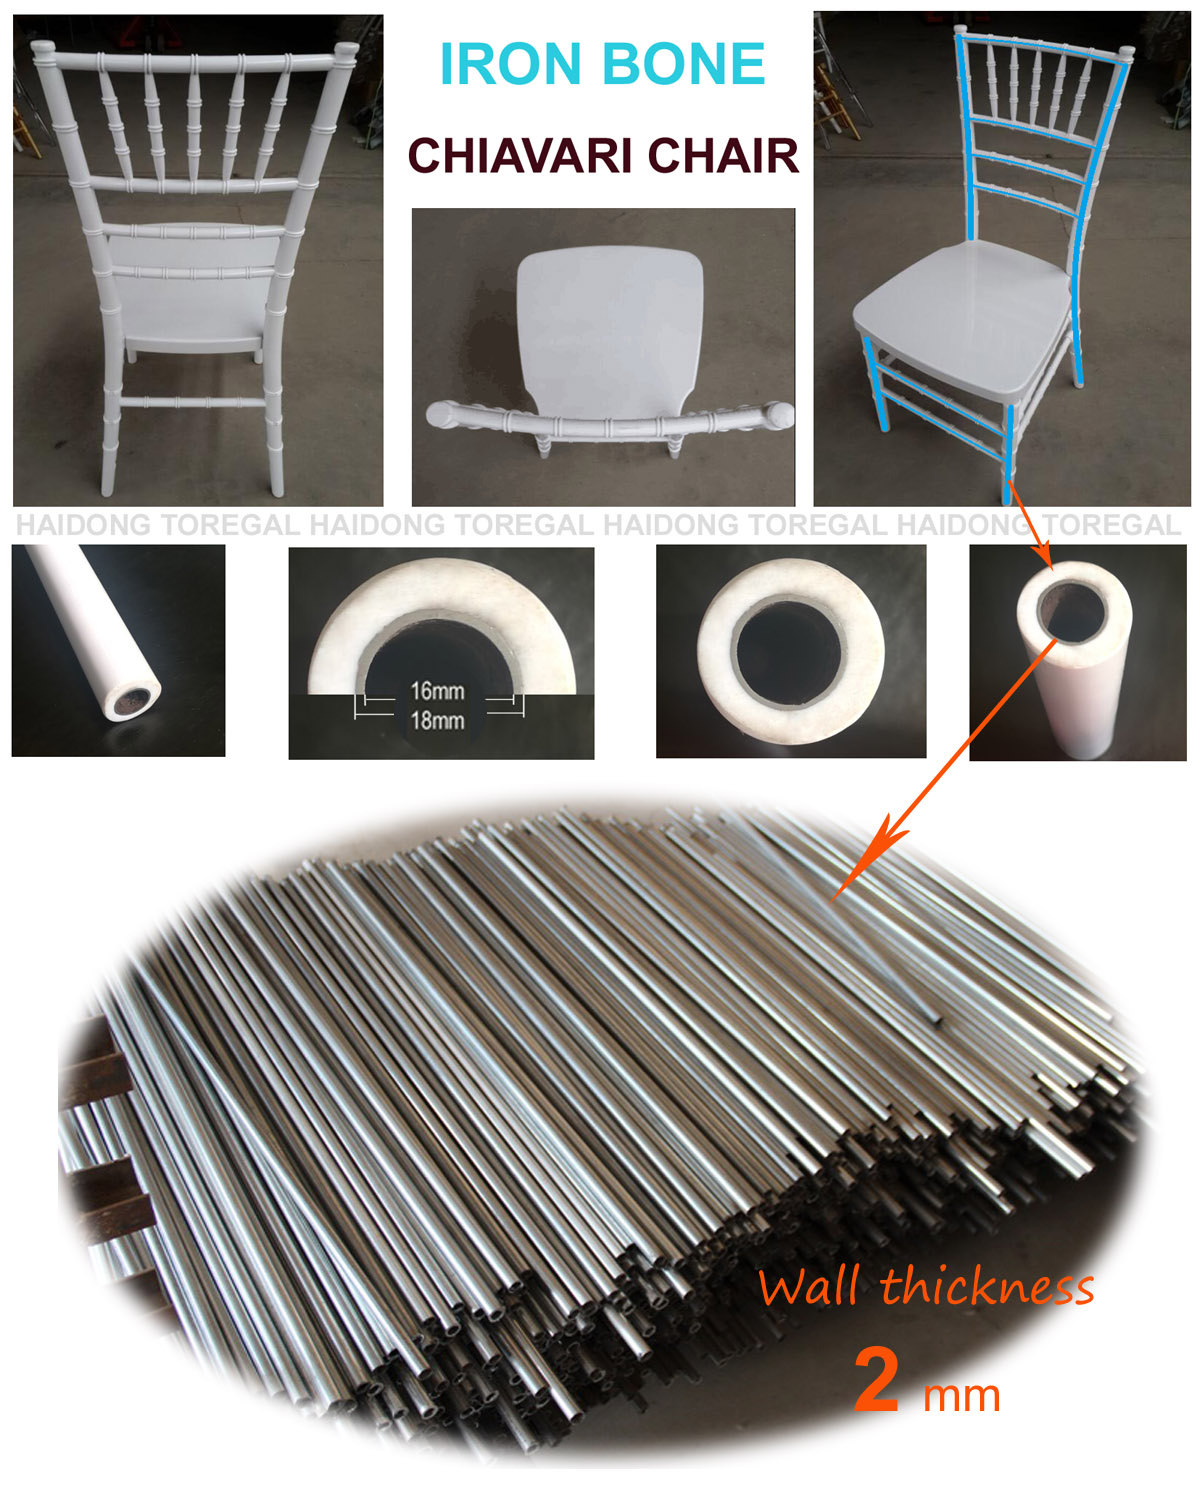 Iron Bone Metal Plastic PP Chiavari Chair